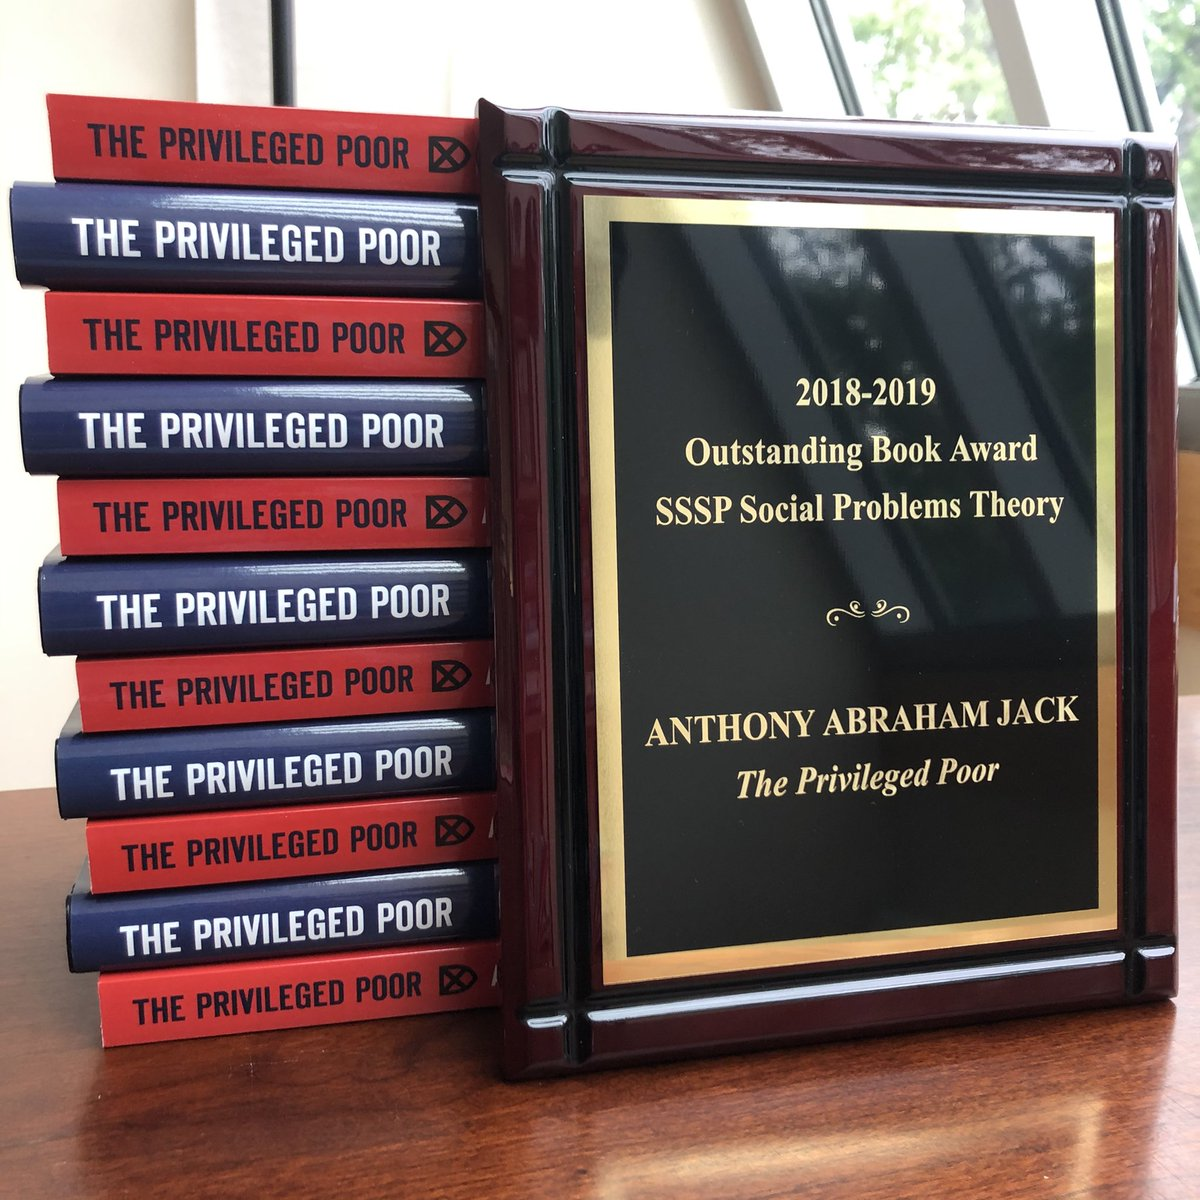 Good mail day. The plaque arrived for the Outstanding Book Award from the Theory Division of @SSSP1org (for books published in 2018 and 2019). #HappyFriday #ThePrivilegedPoor https://t.co/tsx0k7RBsg